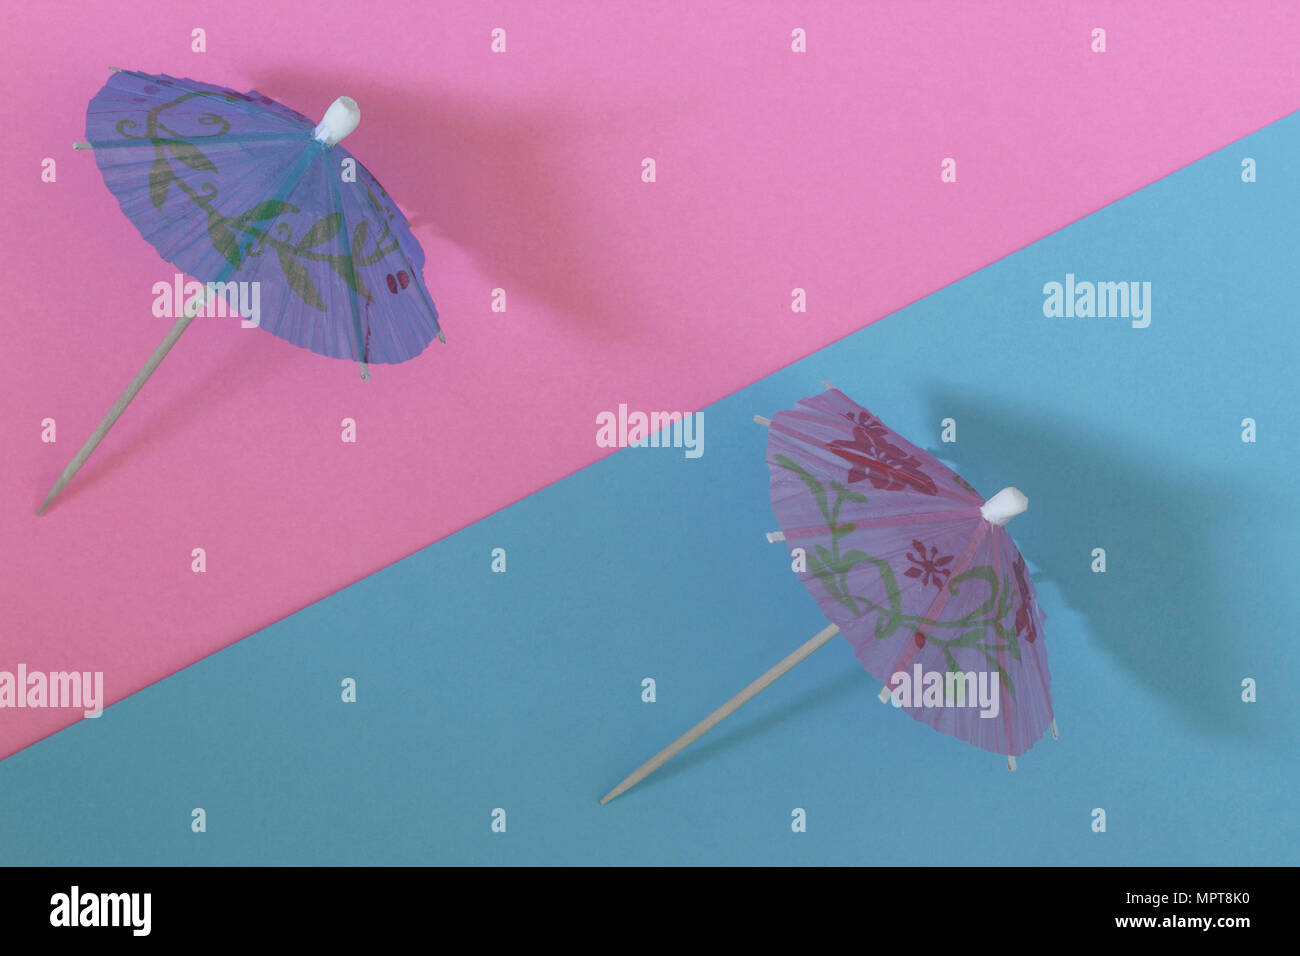 Creative view of a cocktail umbrella on a two-tone background - pink and blue. Conceptual image of summer. Minimalism.  Summertime. Top view. - Stock Image